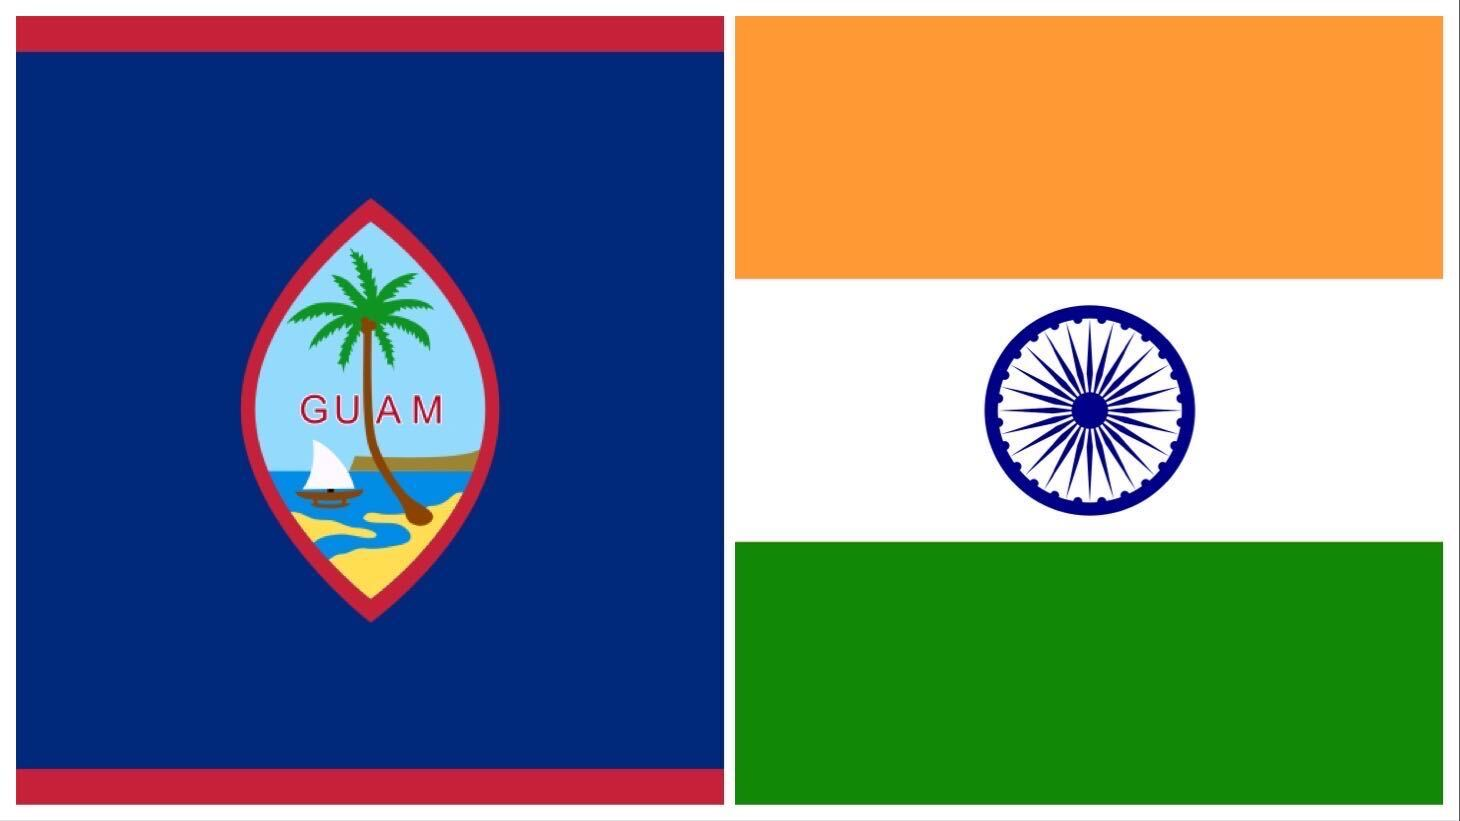 Flags of Guam and India